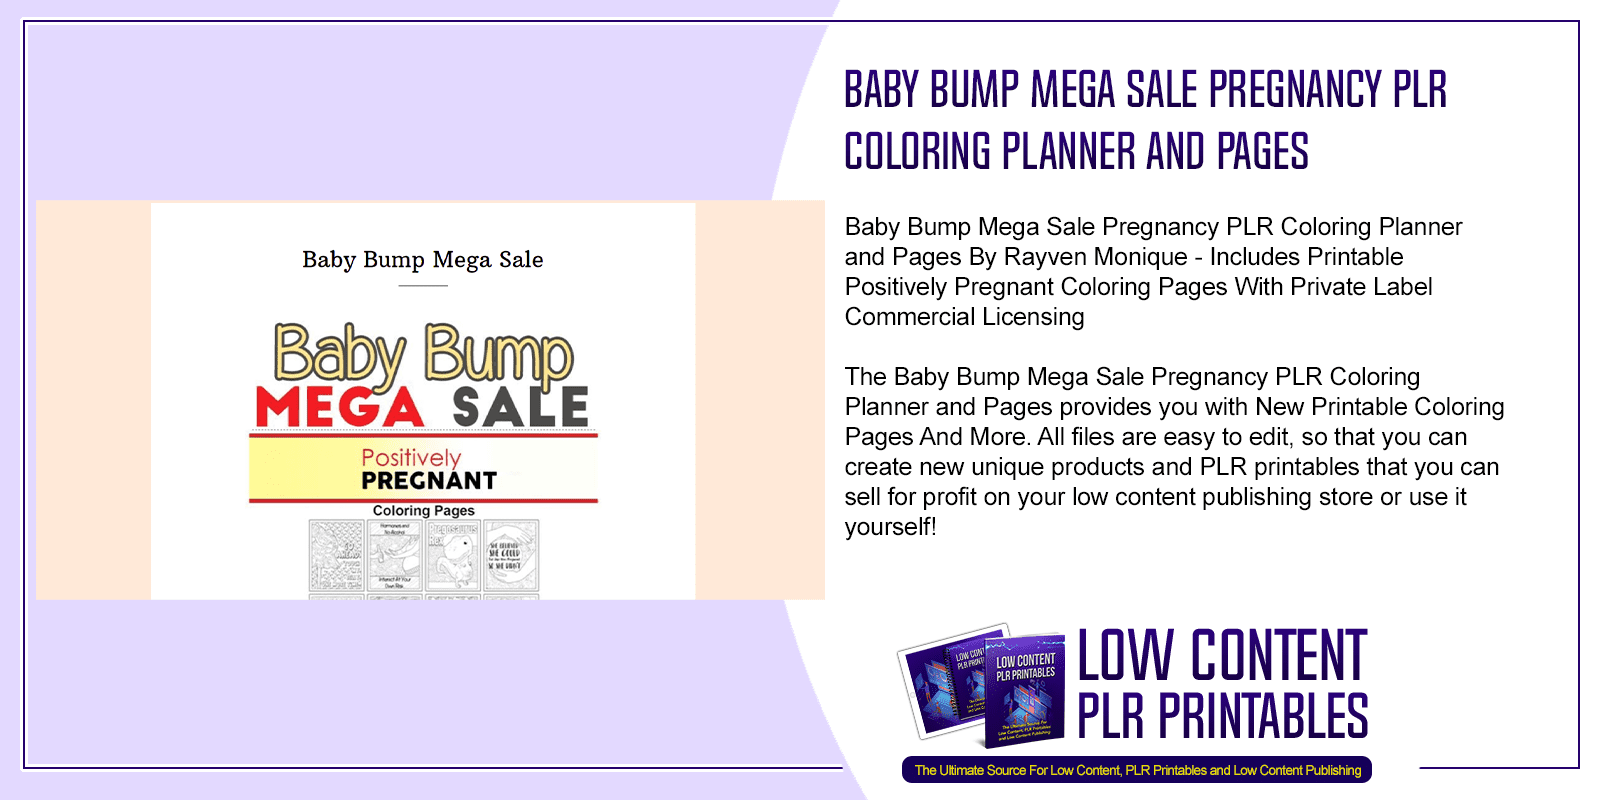 Baby Bump Mega Sale Pregnancy PLR Coloring Planner and Pages